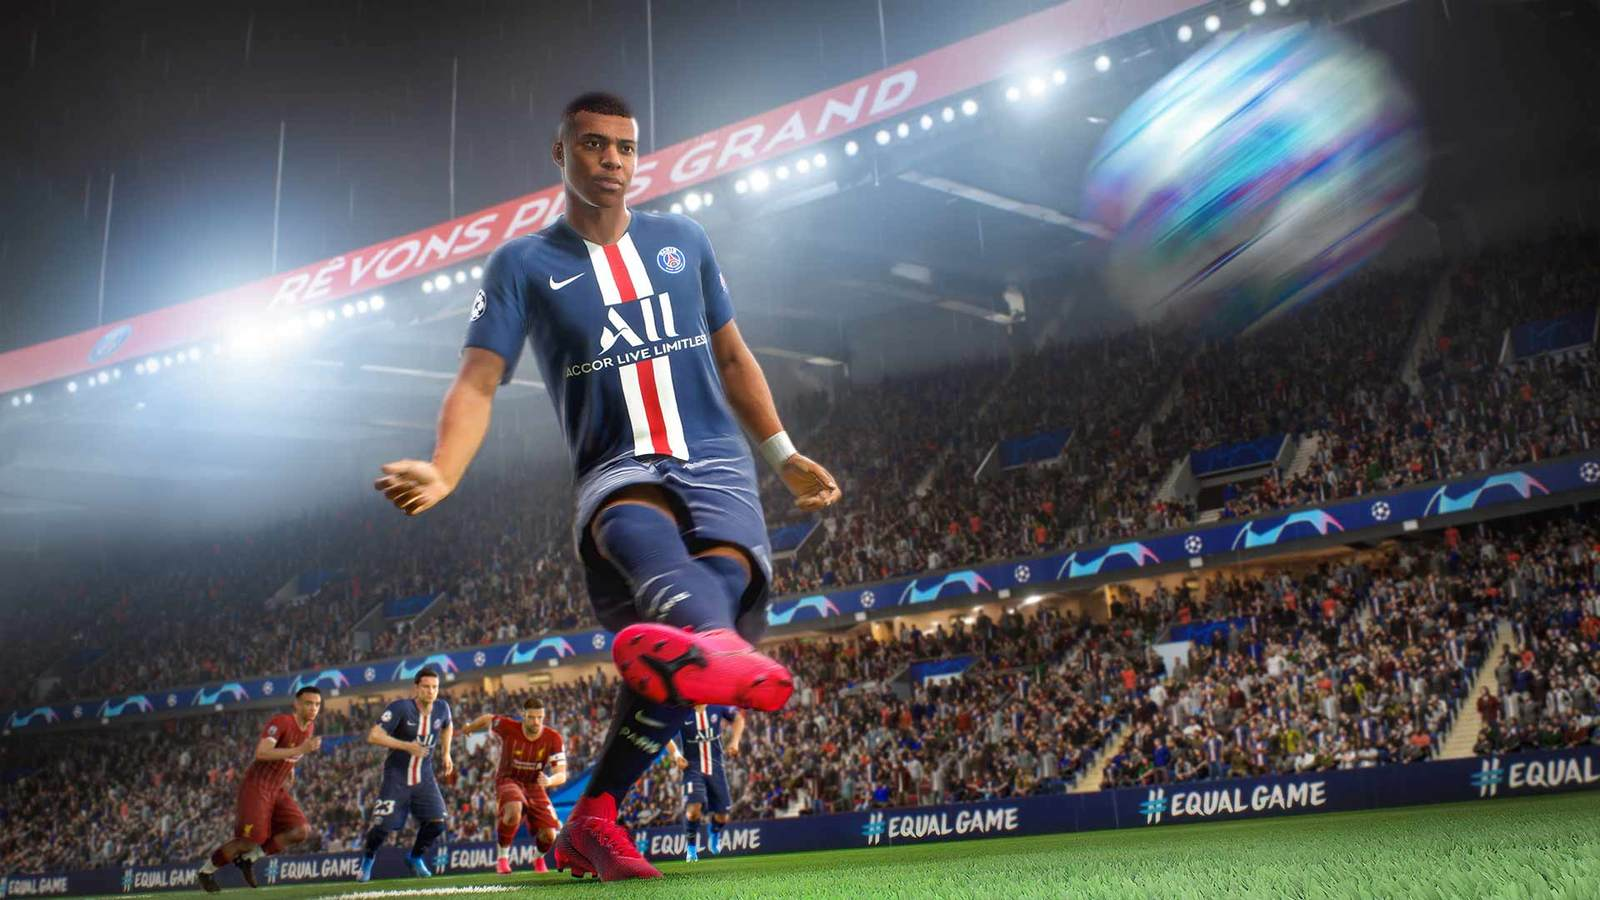 FIFA 21 for PS4 image